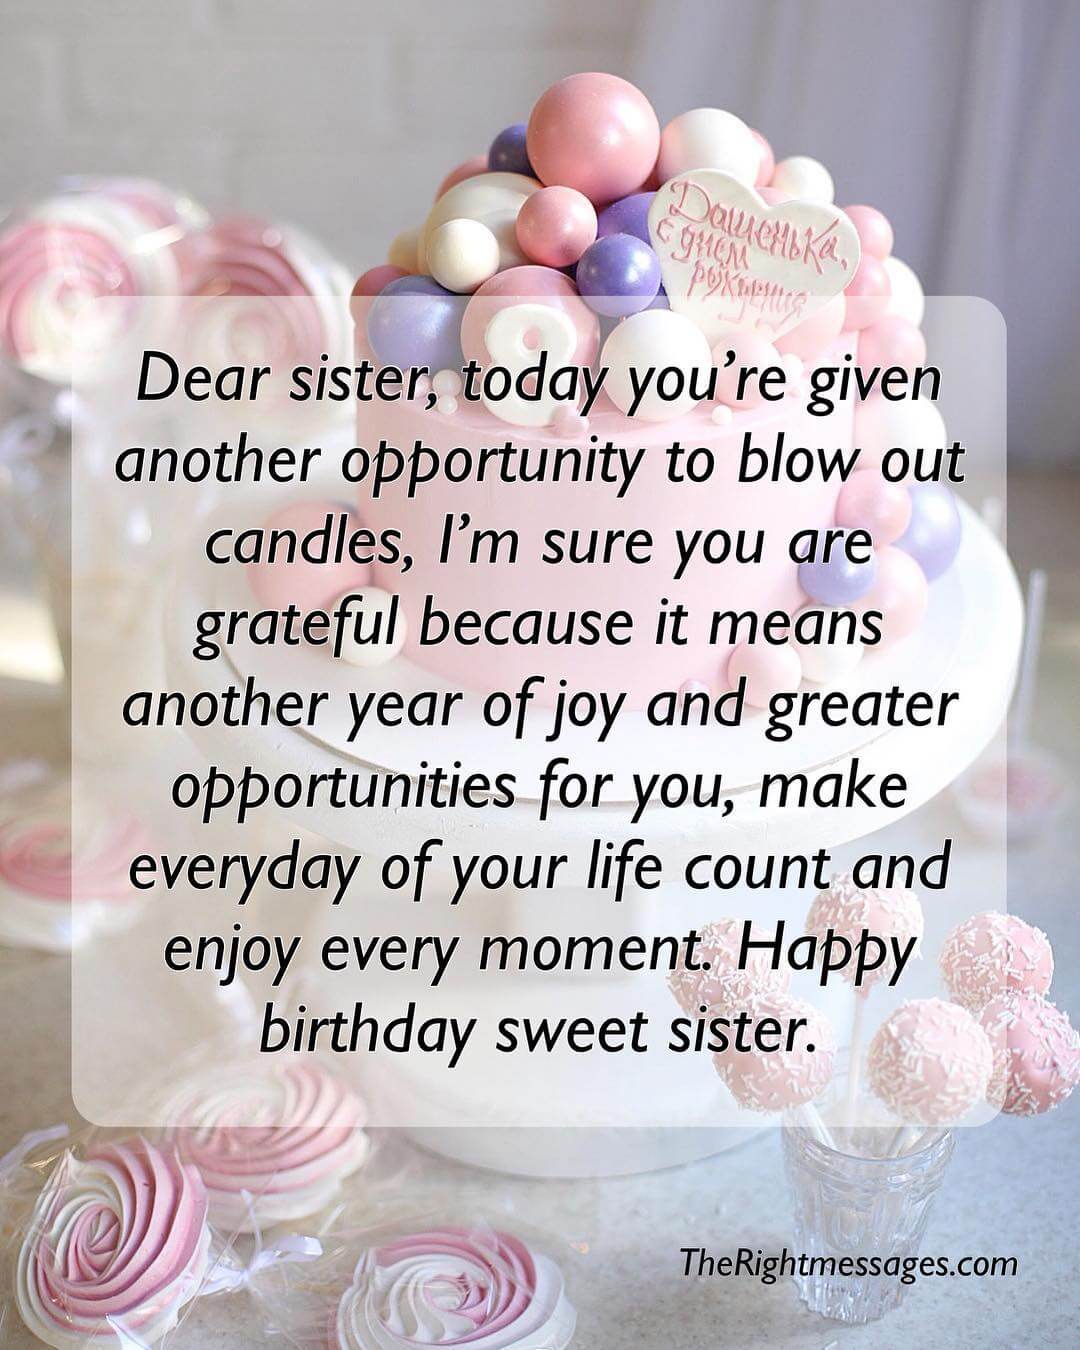 Short And Long Birthday Messages, Wishes & Quotes For Sister